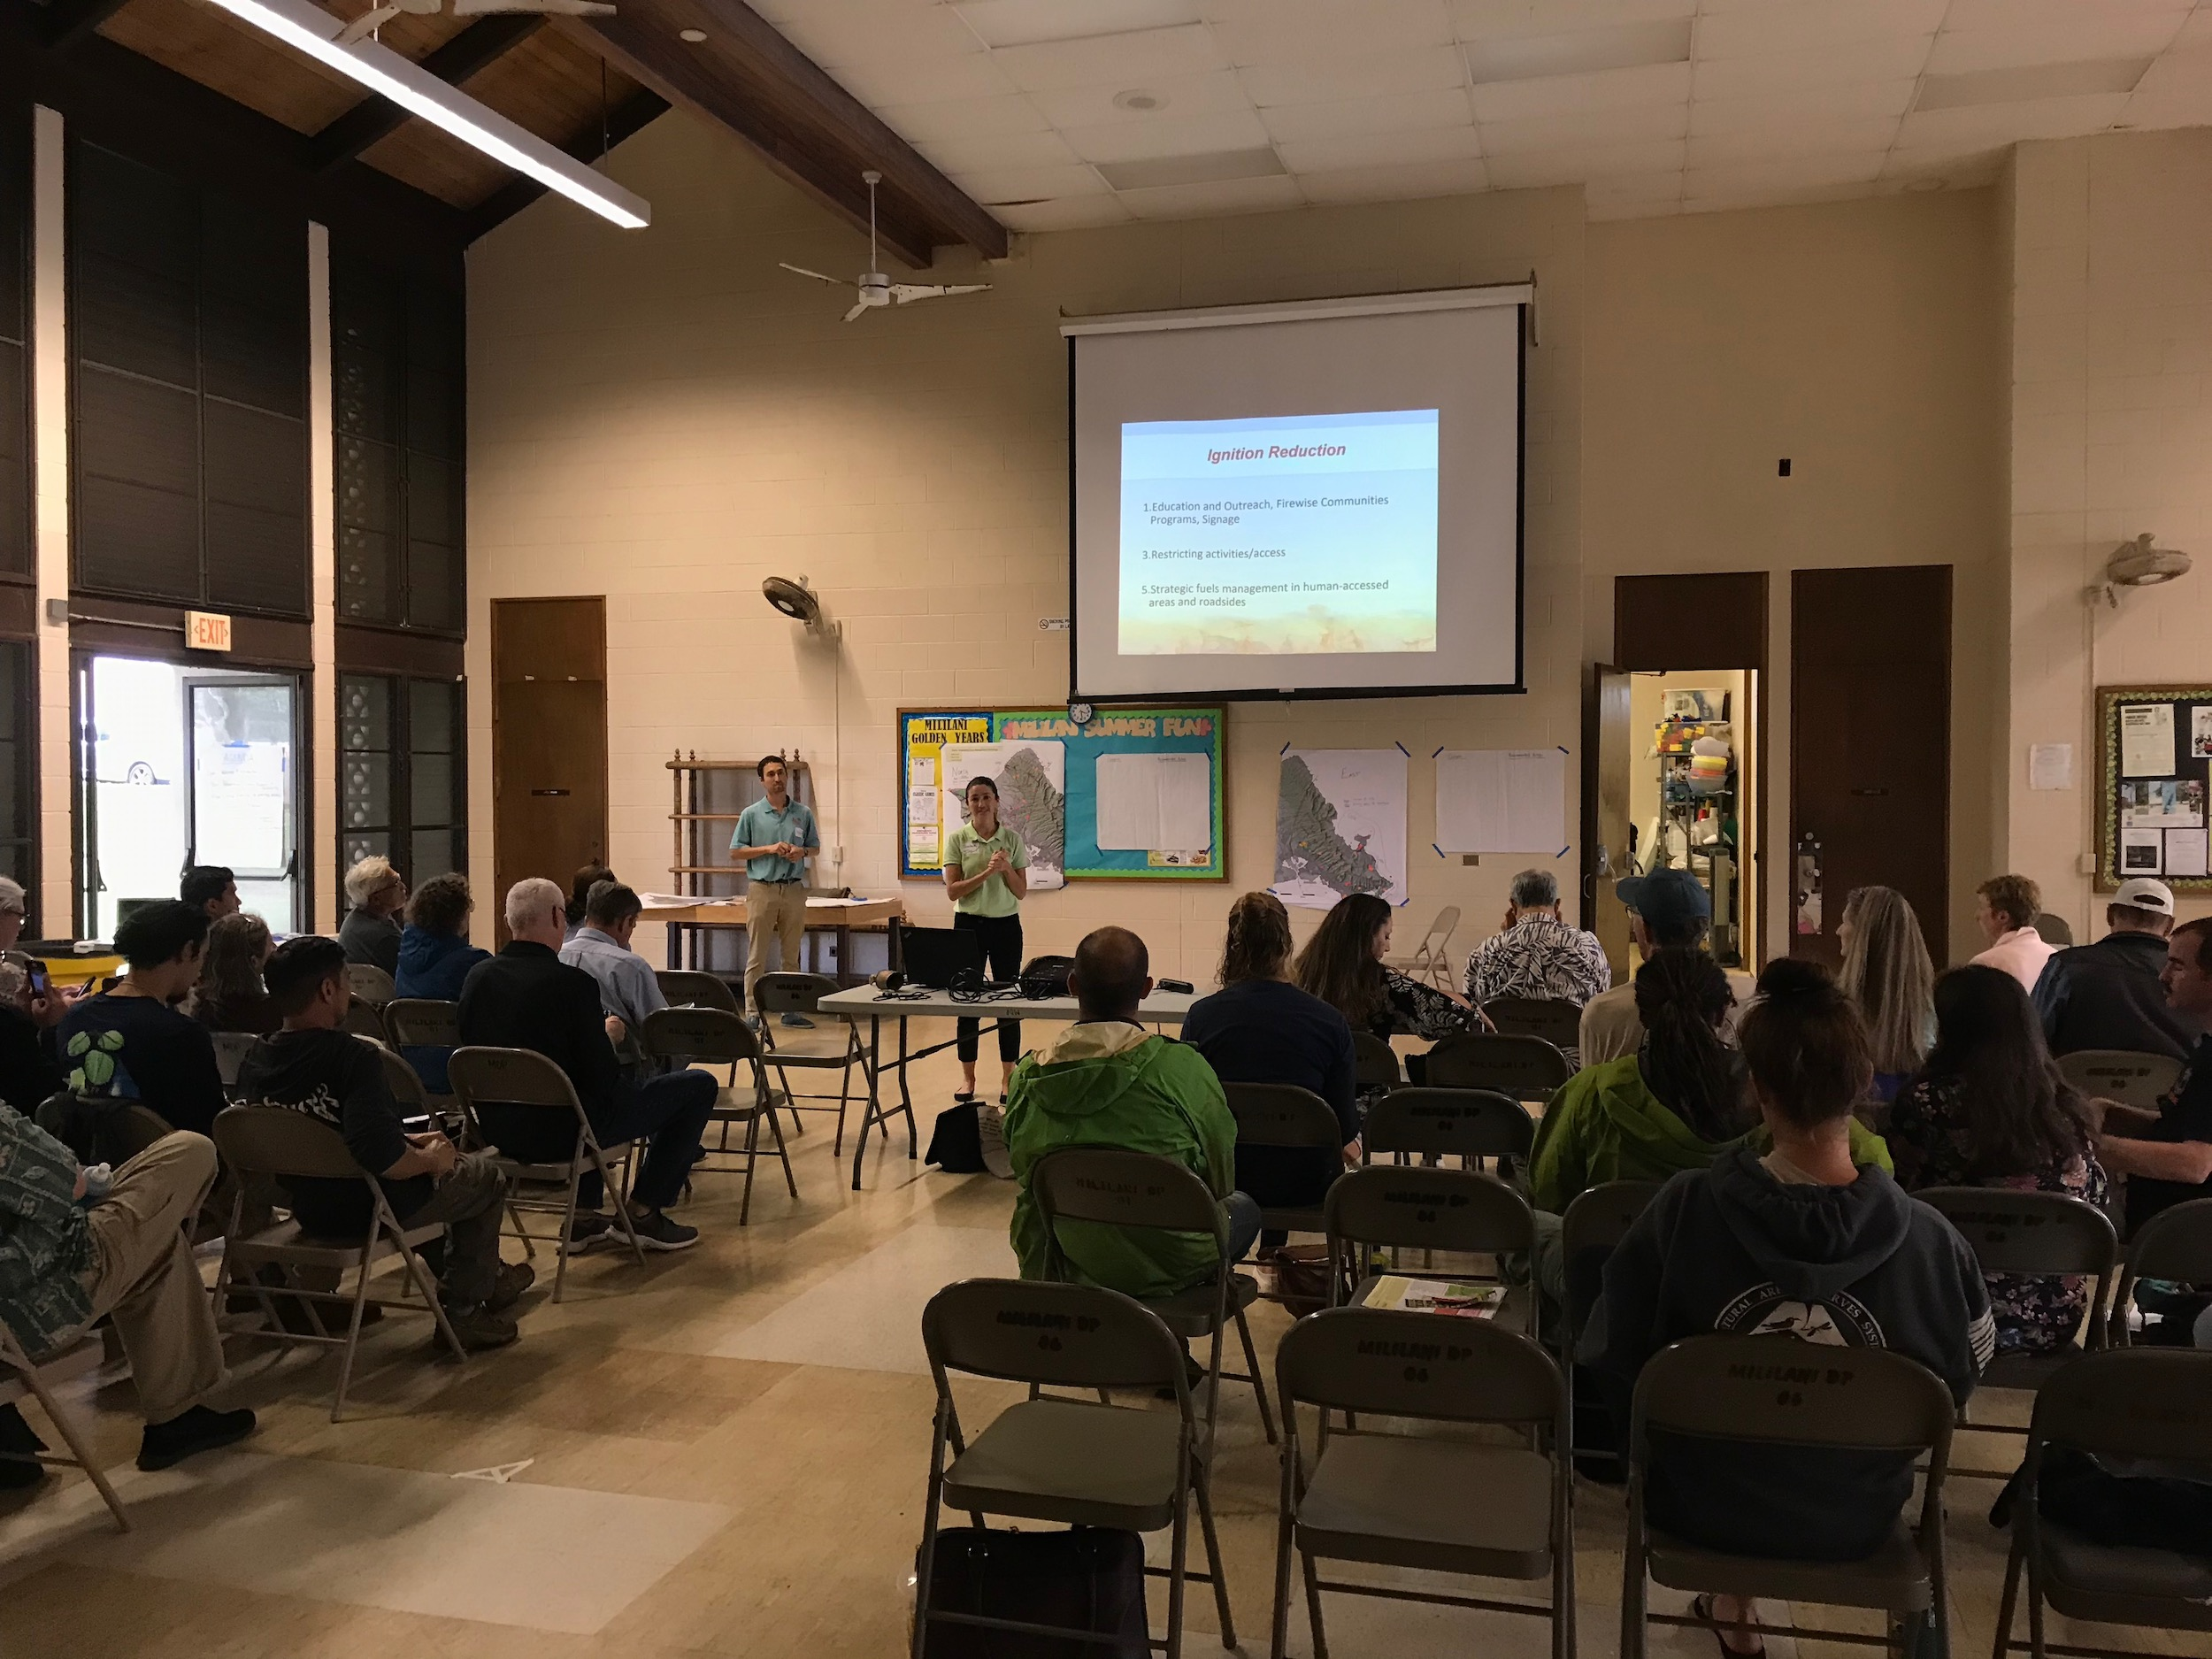 Oahu Vegetative Fuels Management Collaborative Action Planning Workshop_2_19_2019_24.jpg